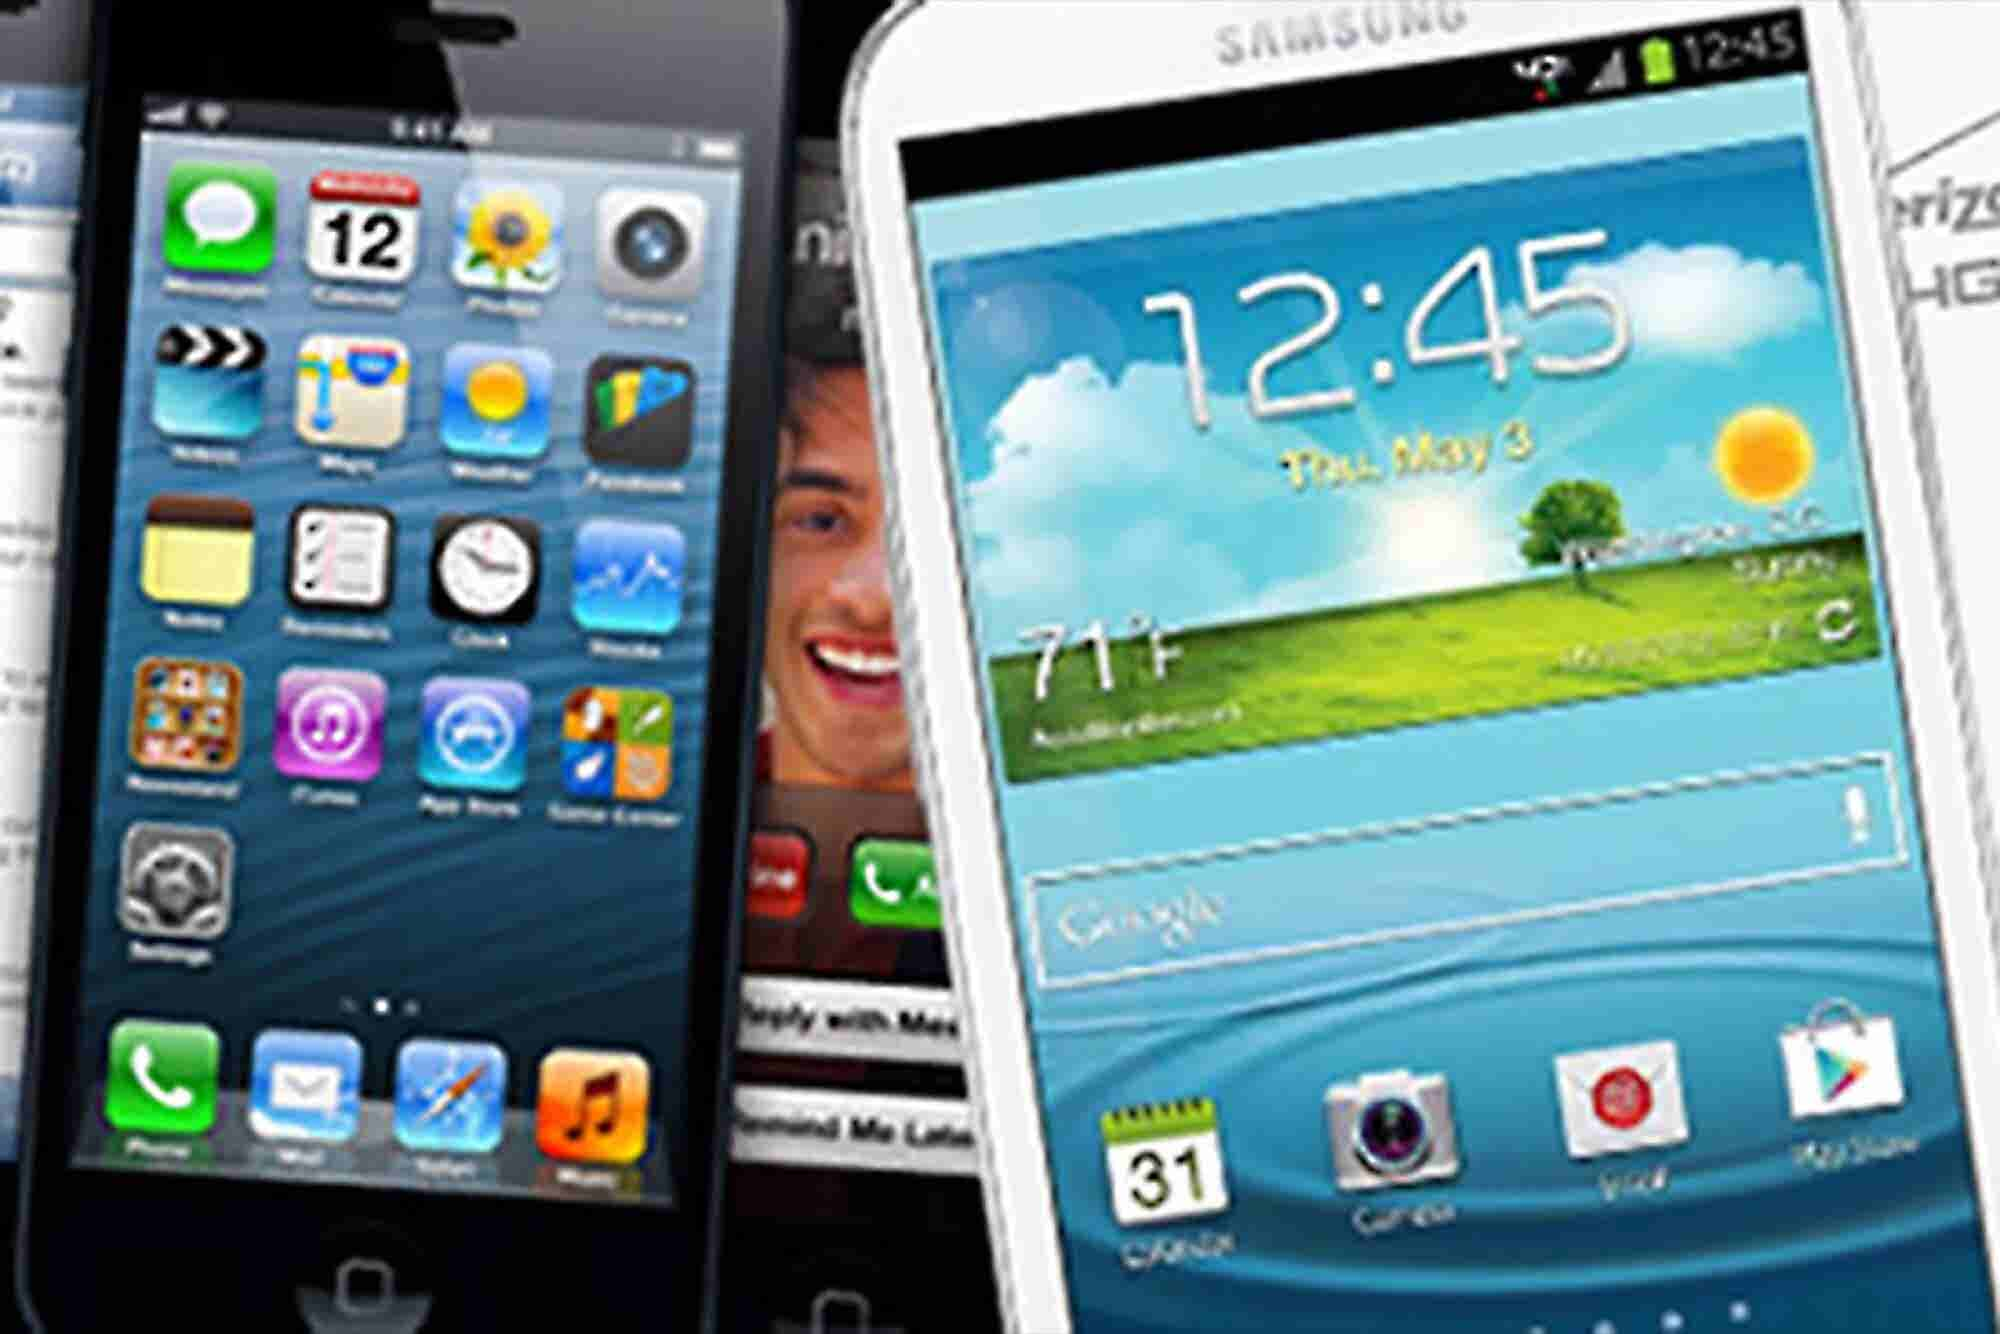 Apple iPhone 5 vs. Samsung Galaxy S III: Which Is Better for Business?